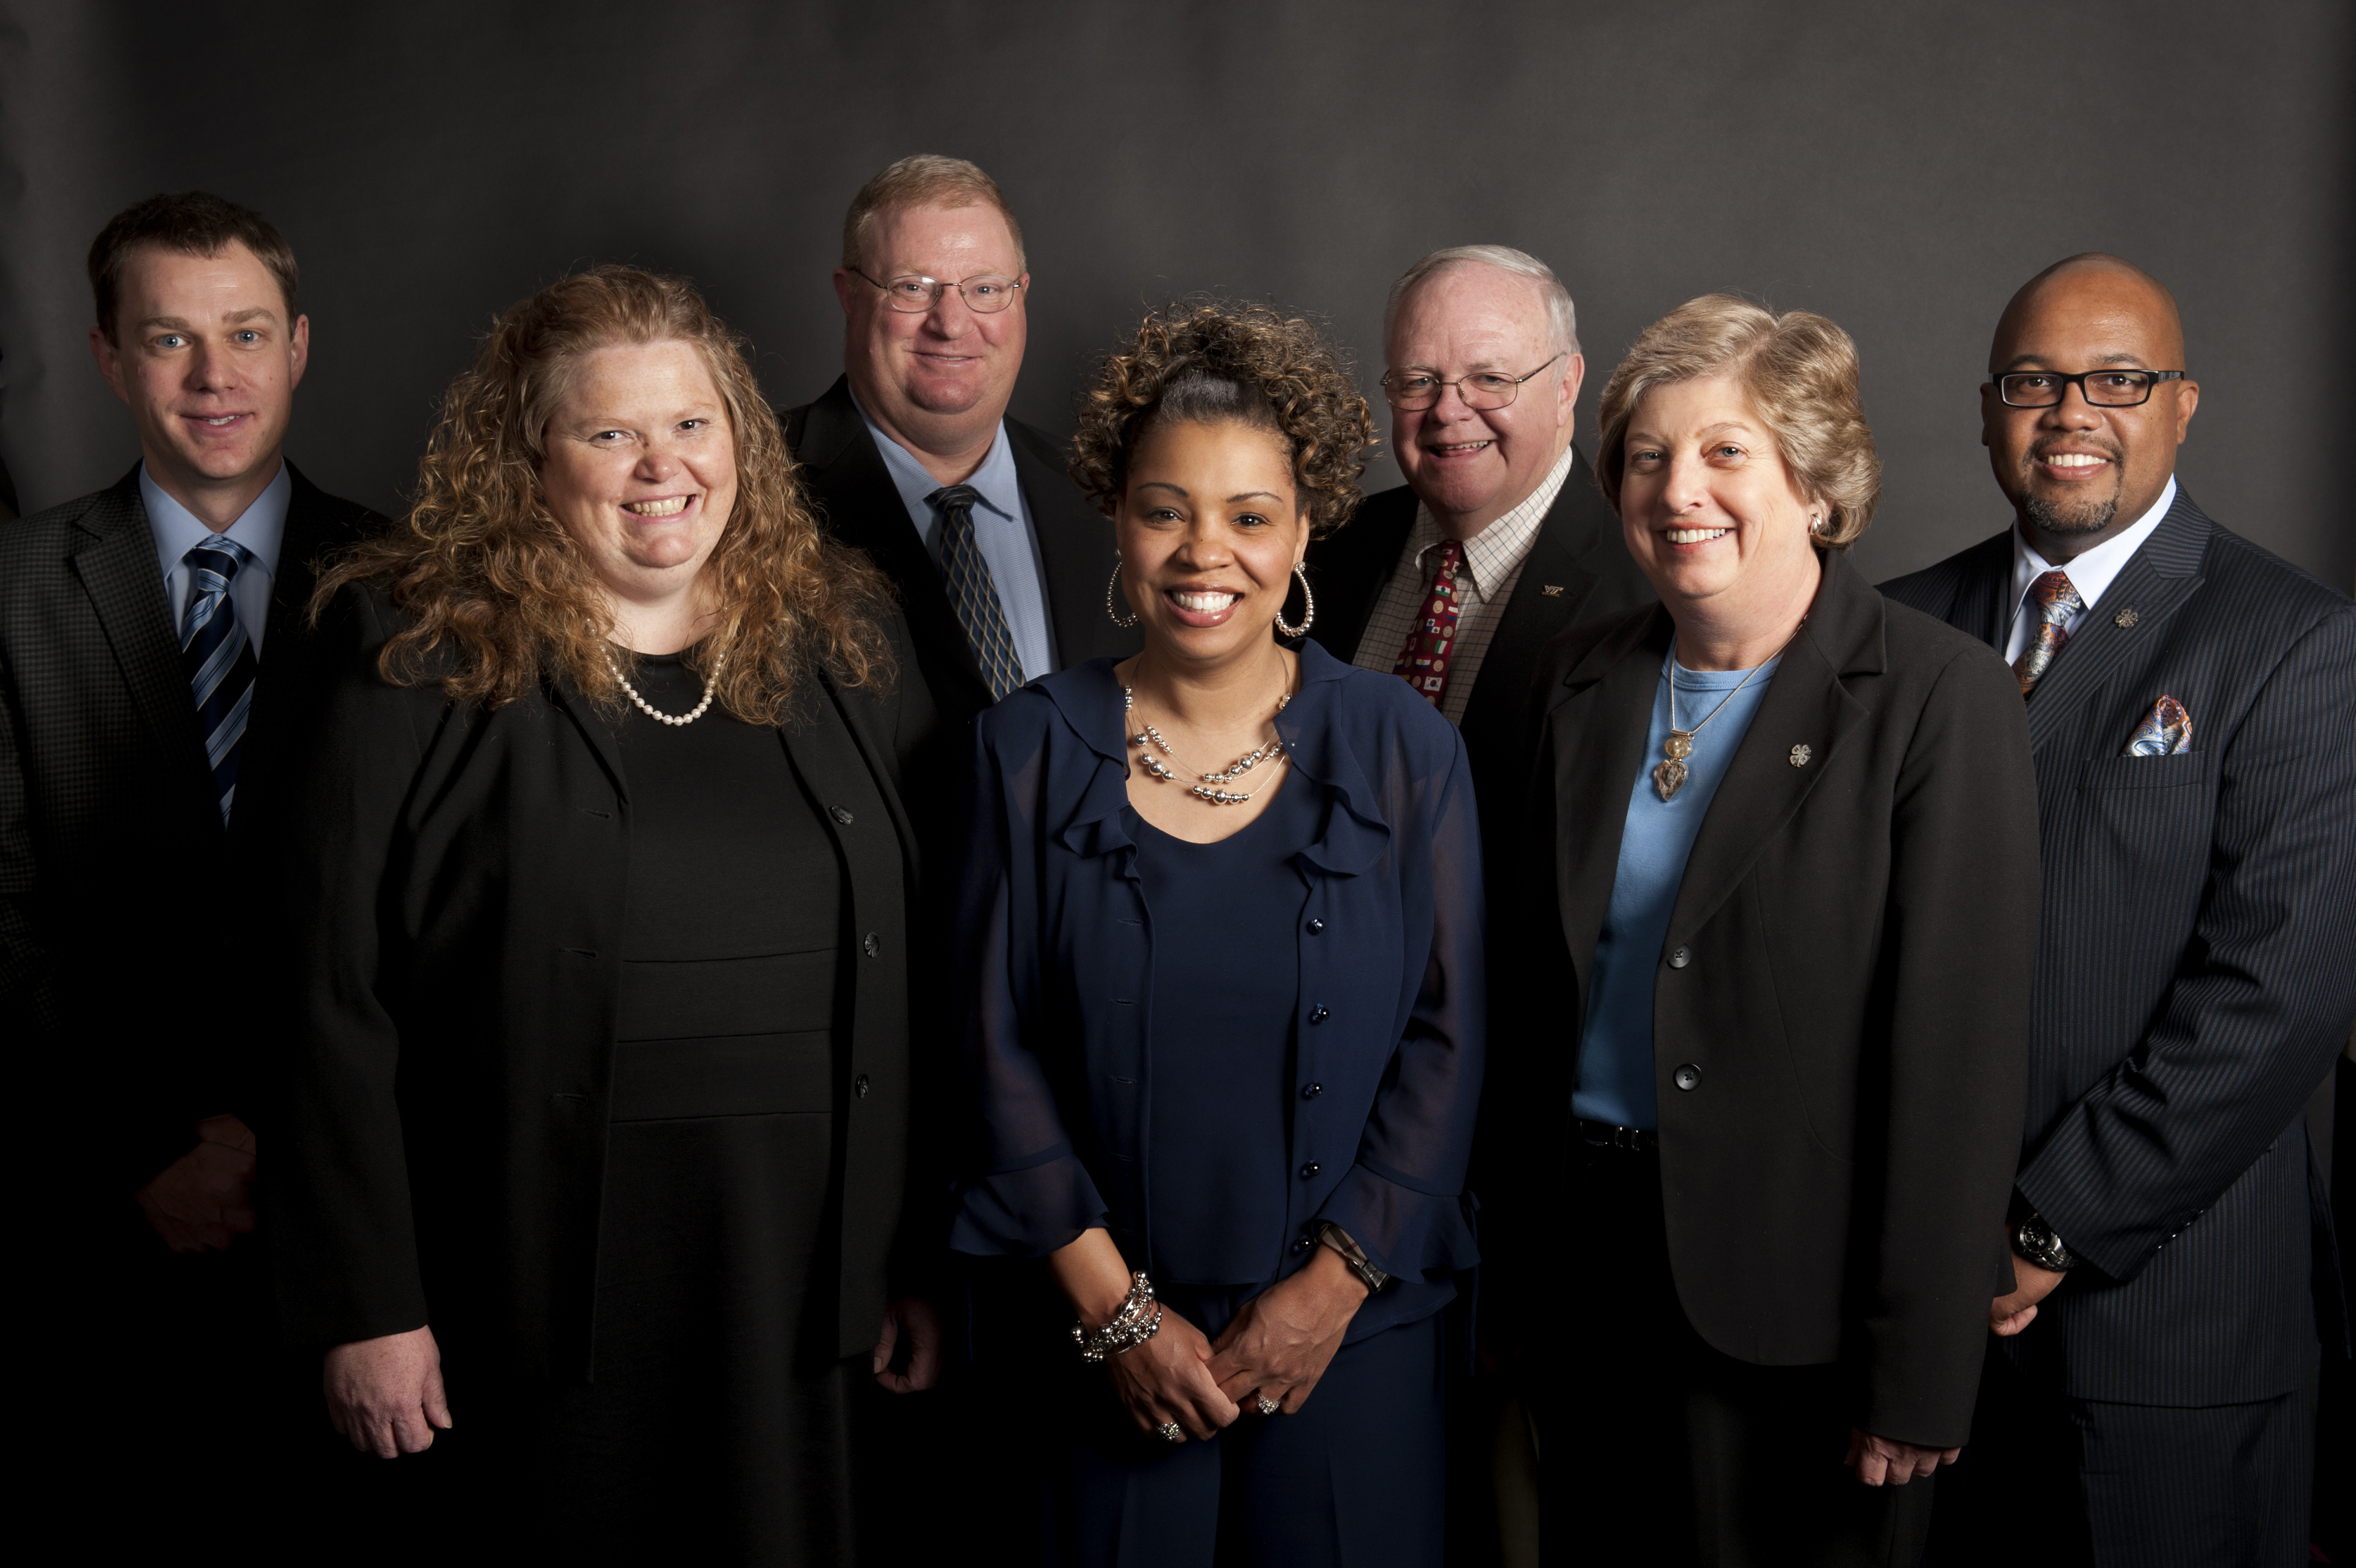 Jeremy Johnson, Jocelyn Dailey, John Blankenship, Tonya Price, Robert Meadows, Glenda Snyder, and Brain Hairston